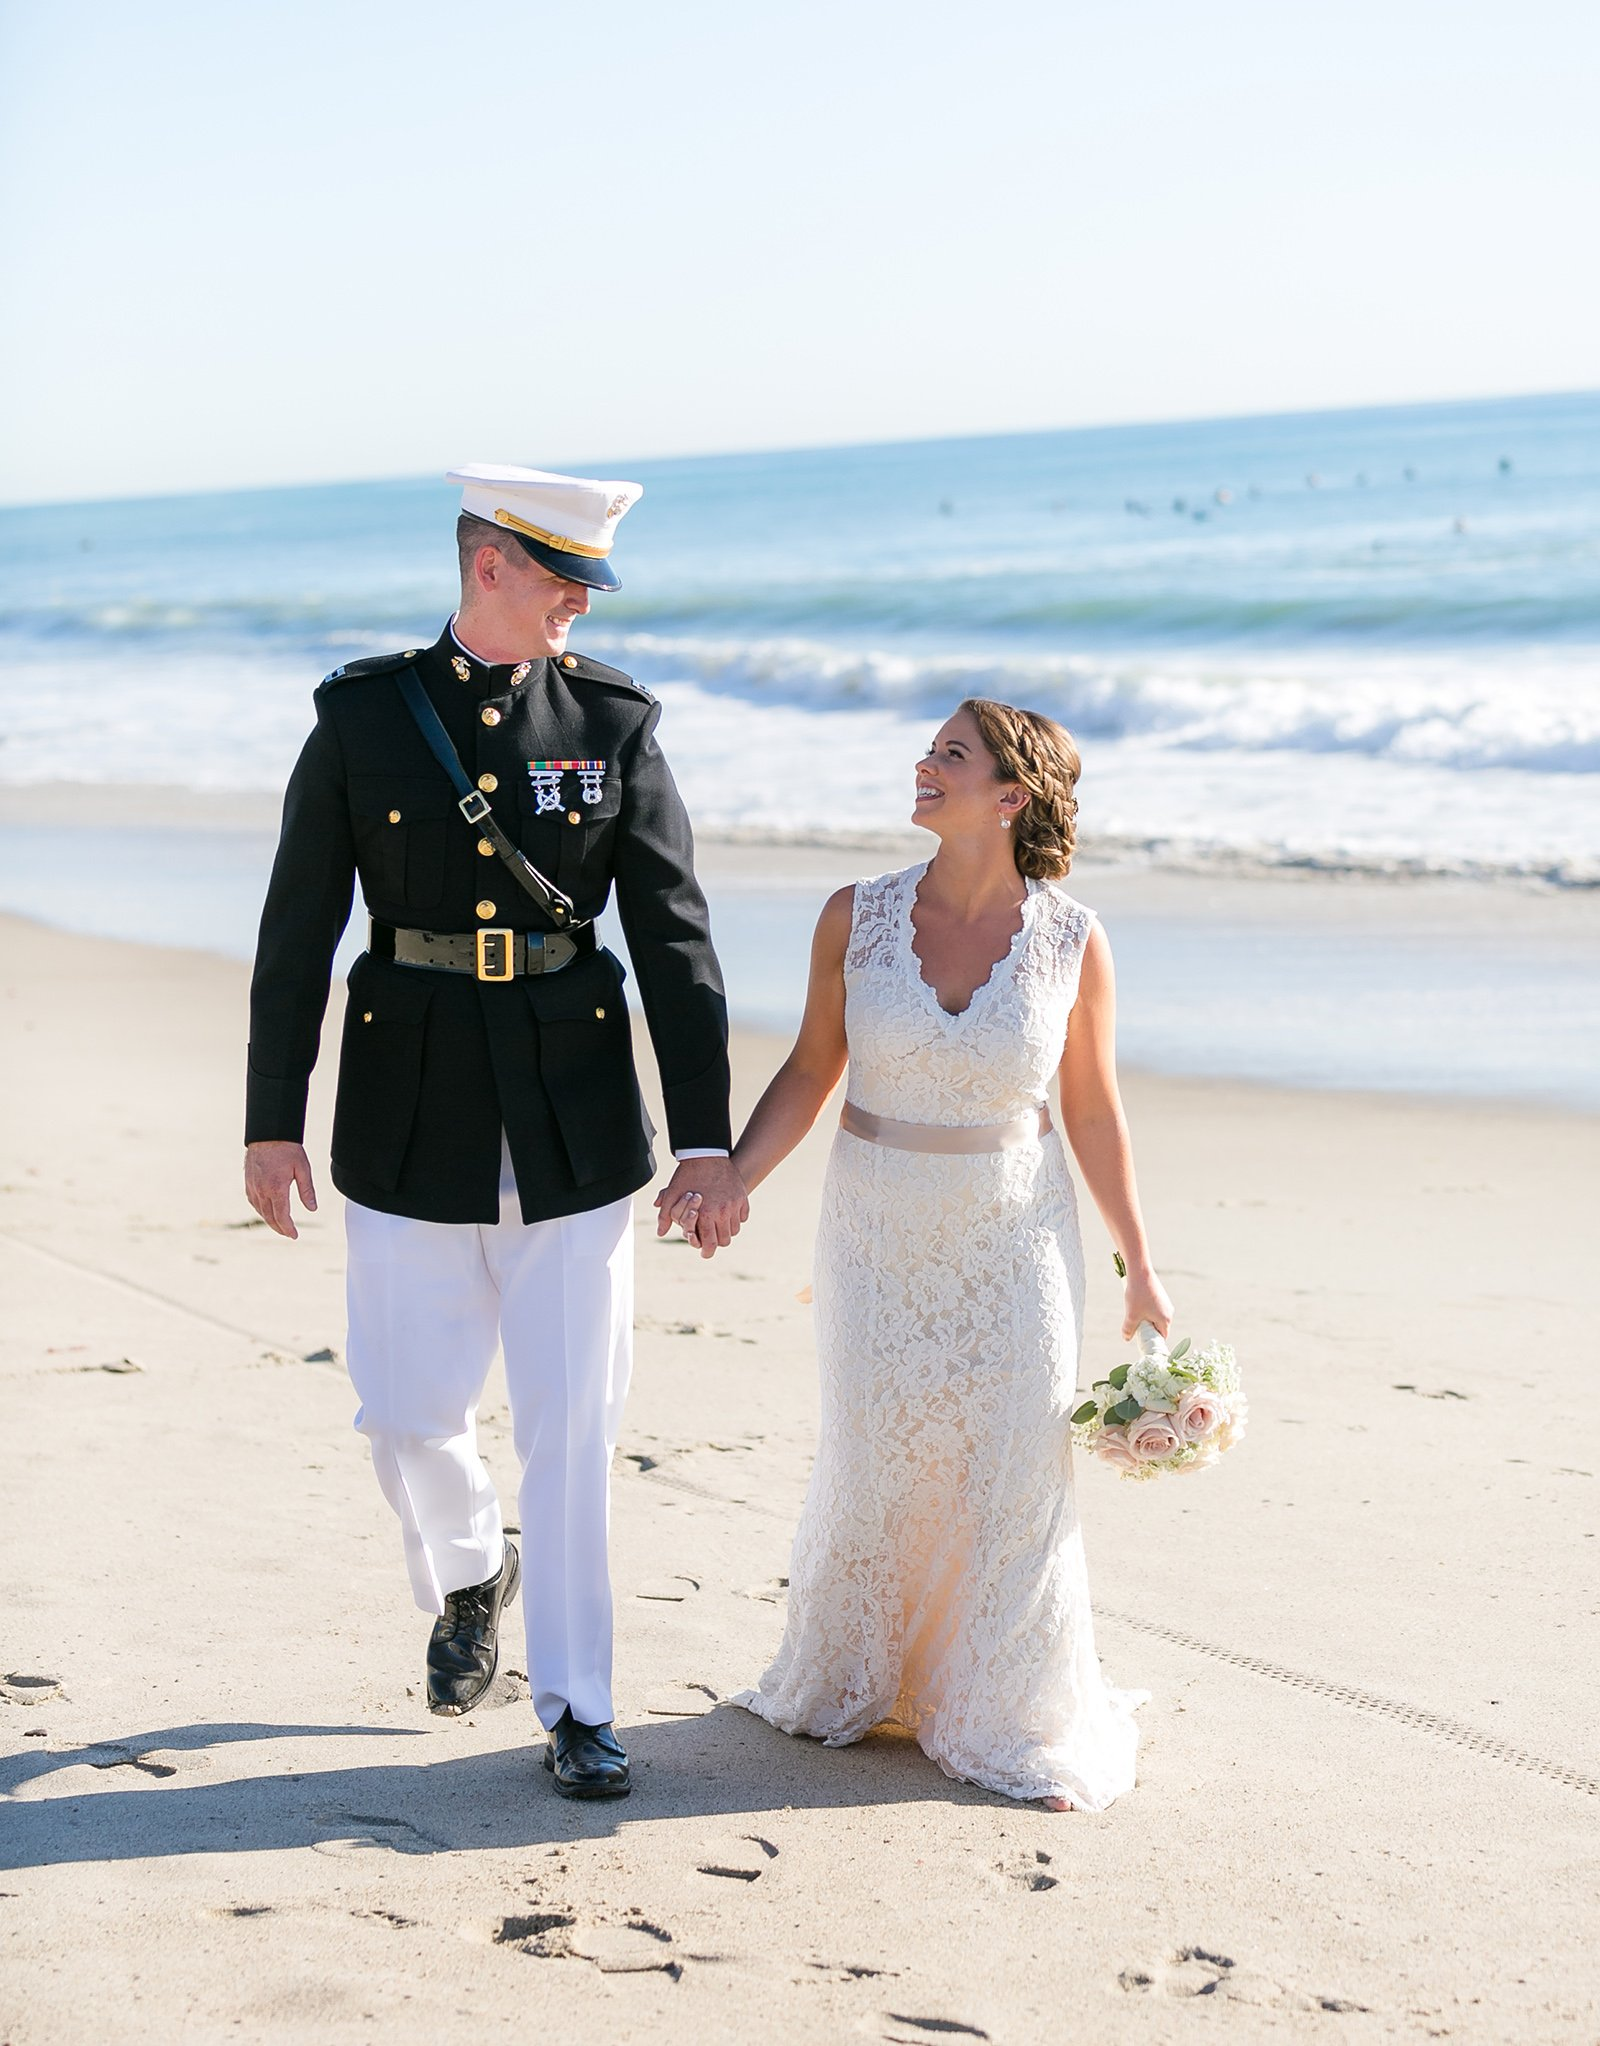 Couple by Cliffs - San Clemente - San Clemente, California - Orange County - Wedgewood Weddings